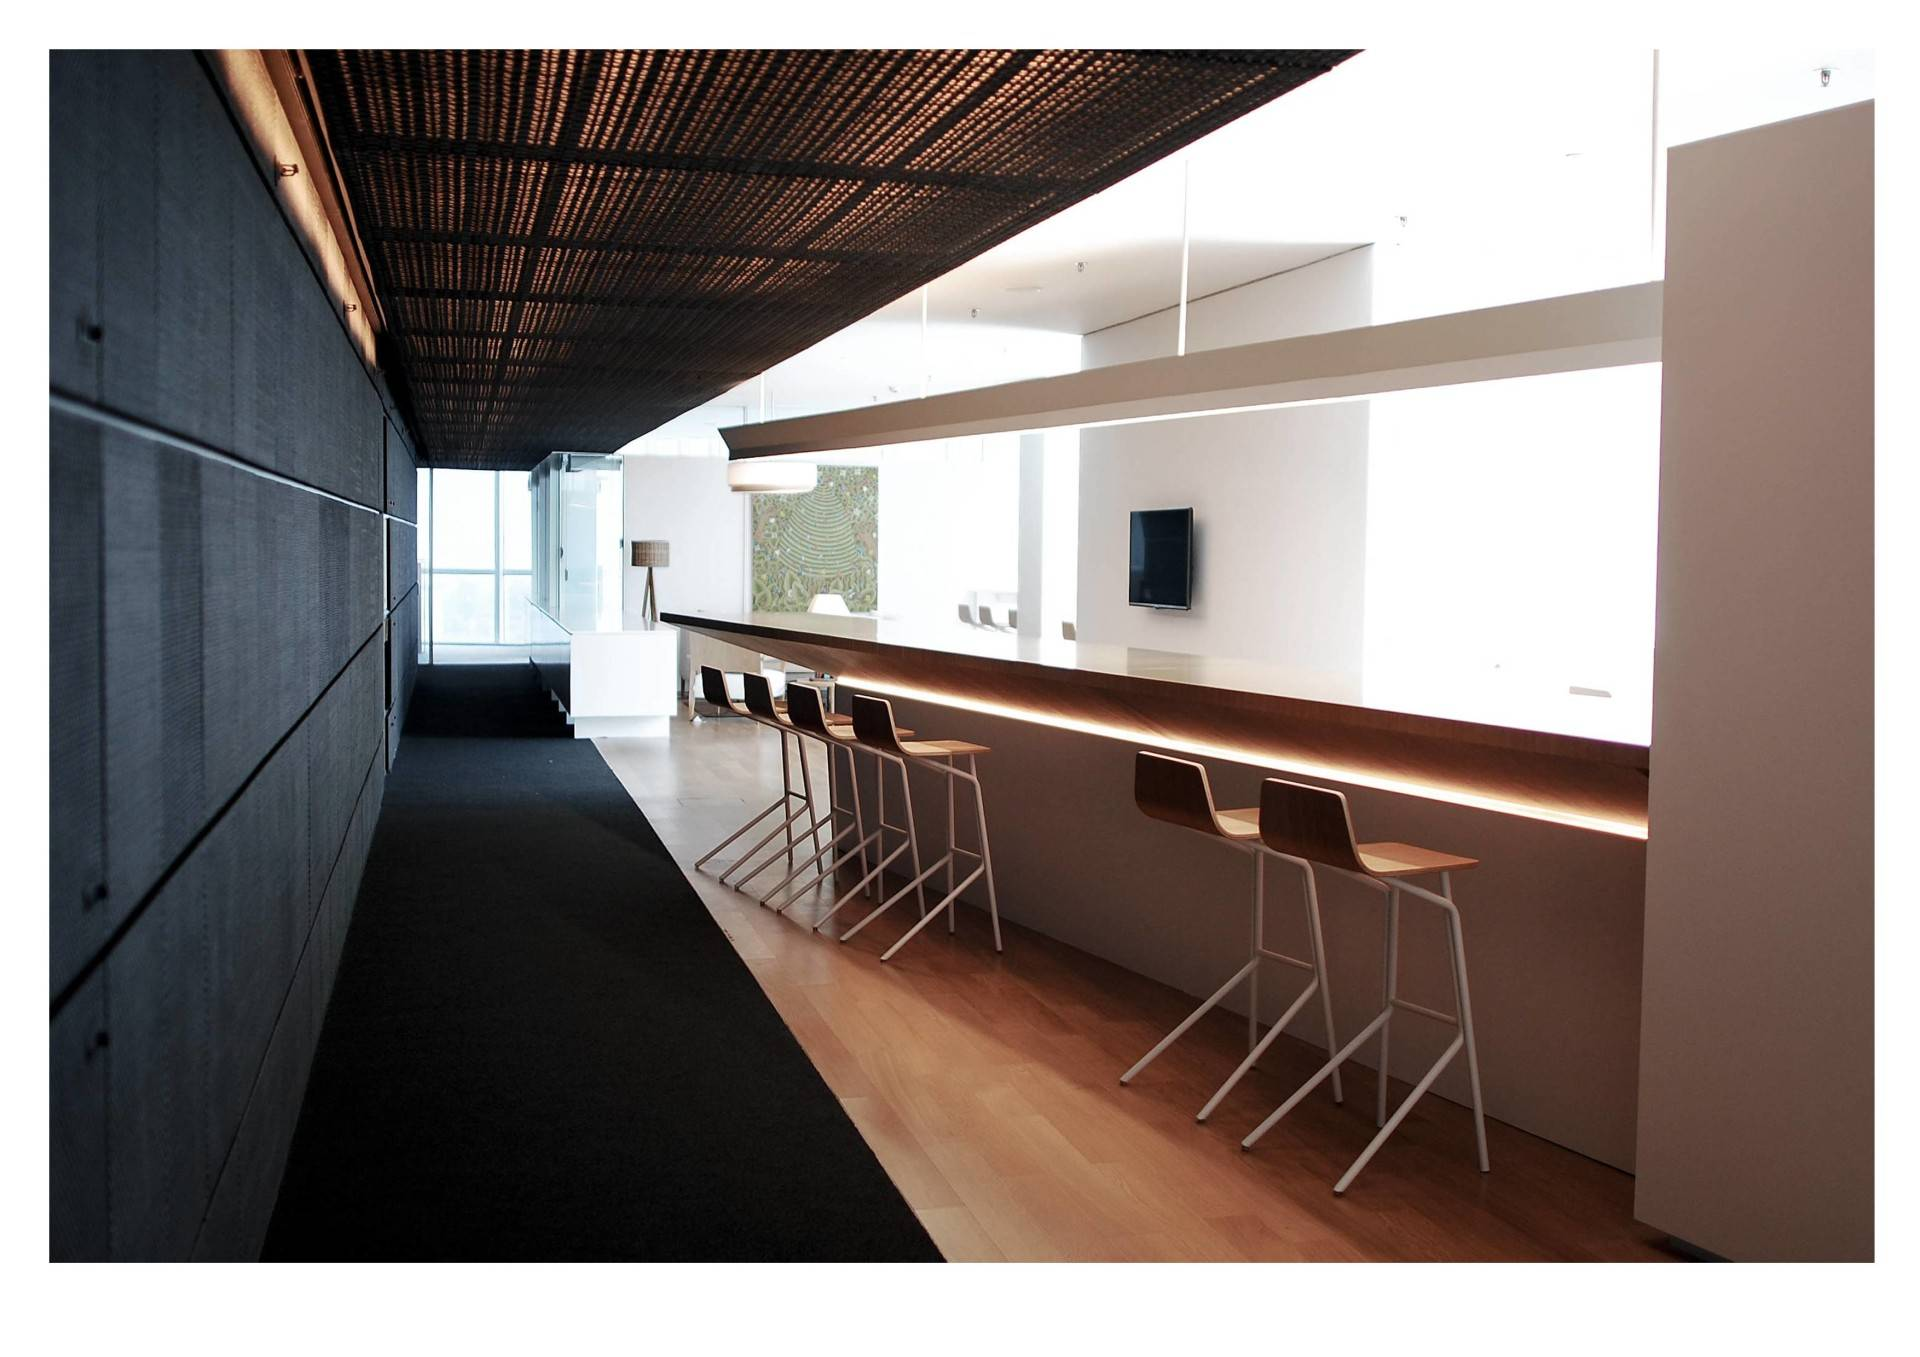 Andramatin Pgn Office Jakarta, Indonesia Jakarta, Indonesia Seating Area Office Contemporary  8228